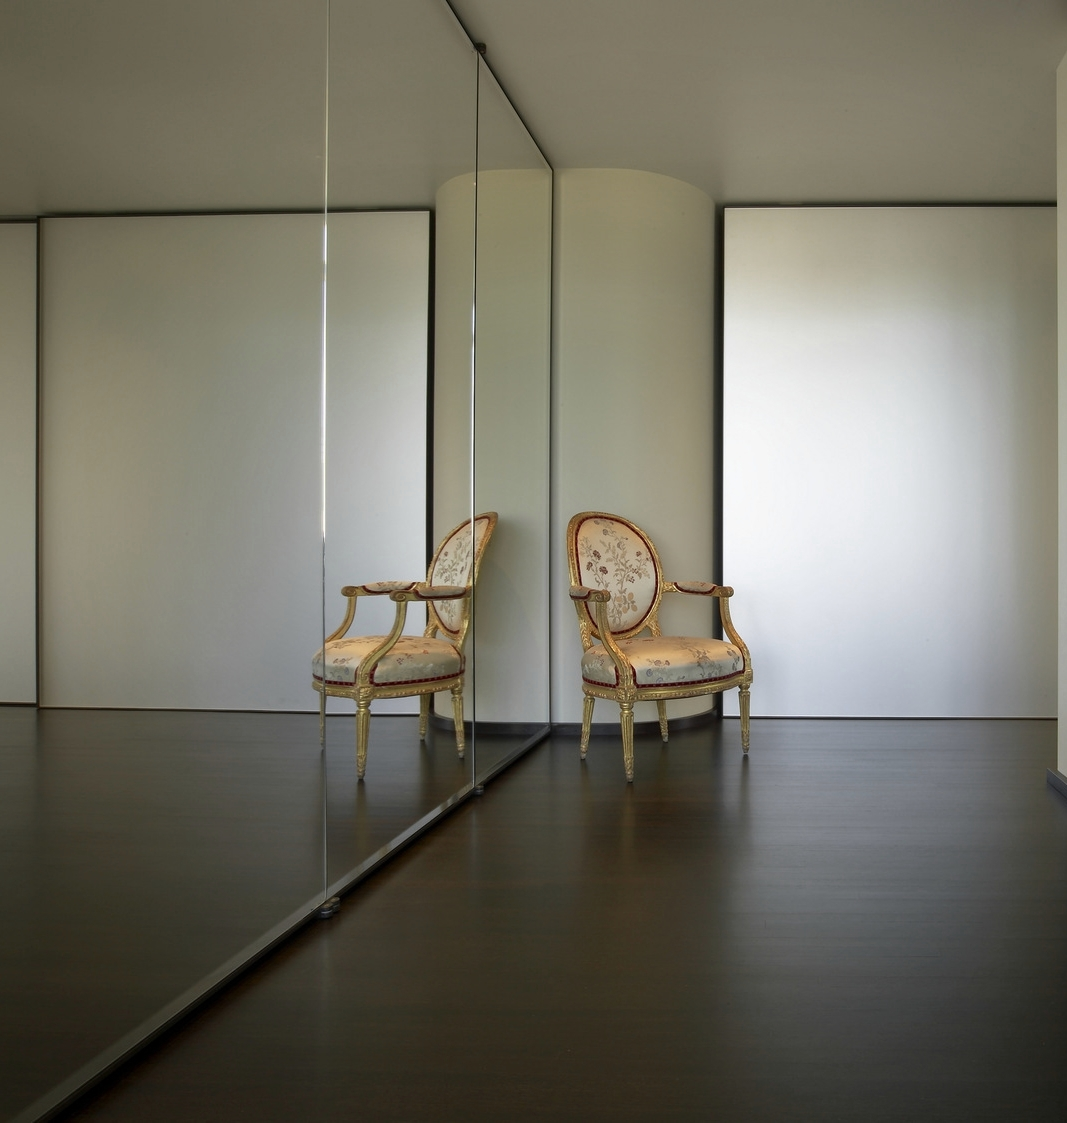 Chambers Apartment Hallway Mirror and Chair